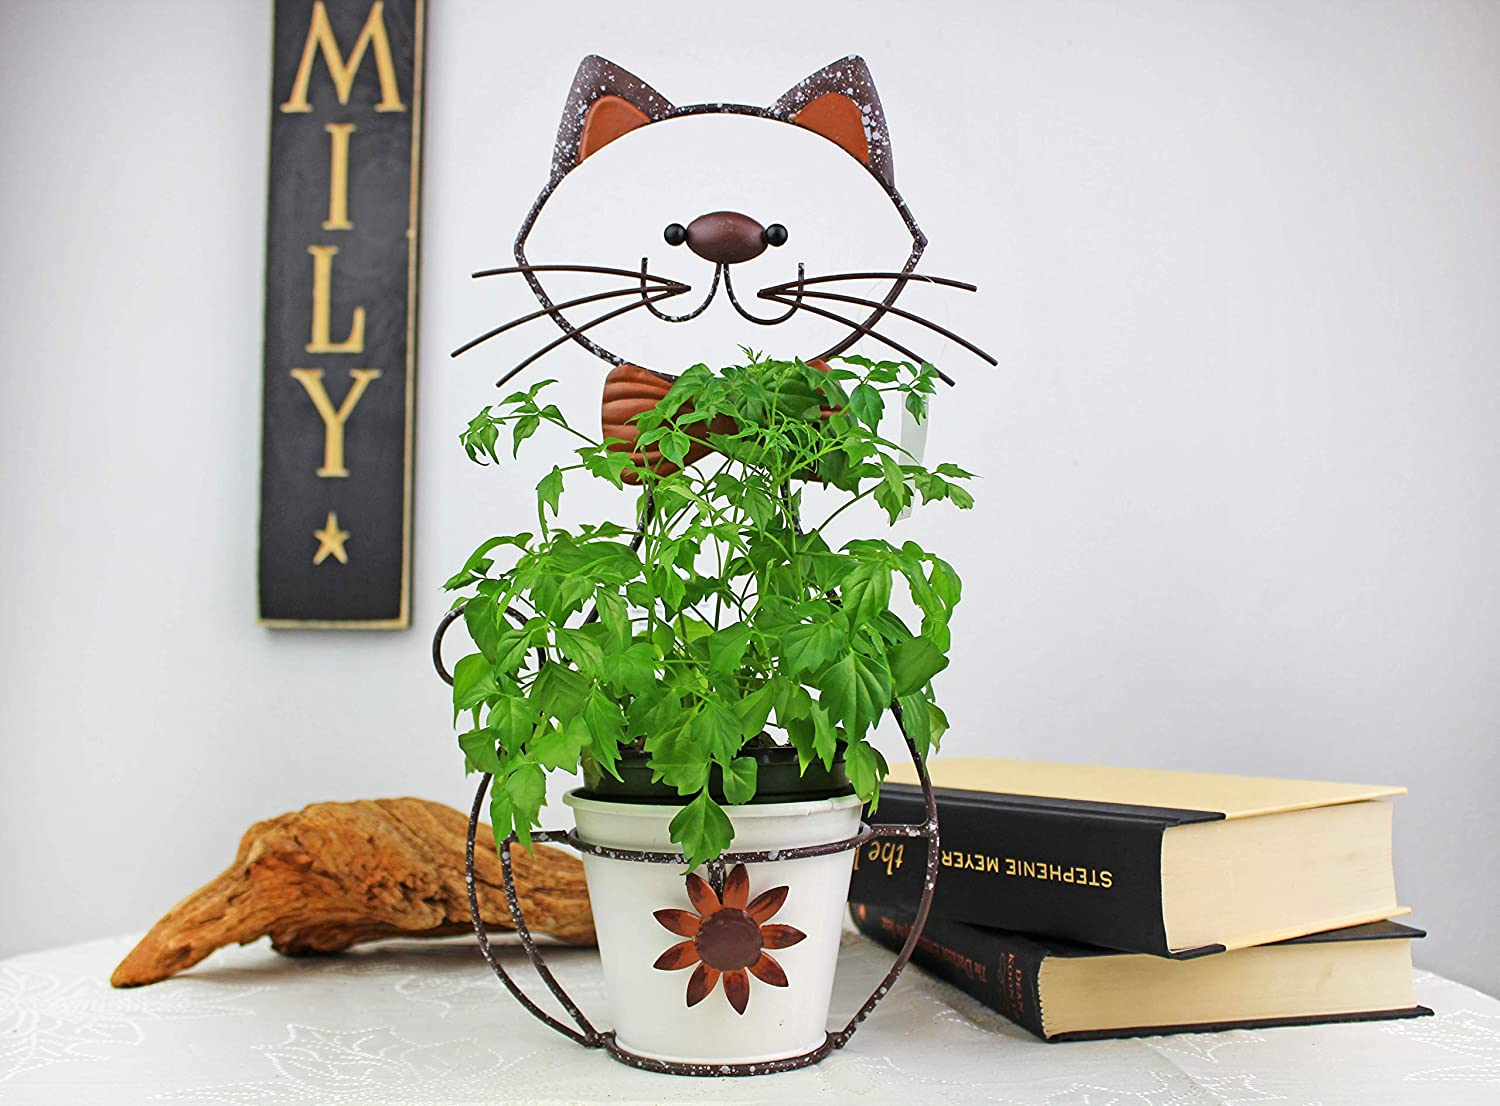 Cool Cat Metal Cat Plant Stand for 4 Inch Planters – Animal D cor for Indoor or Outdoors – Perfect for Succulents, Tropical Plants, Orchids, Herbs or Other Plants in Your House, Garden or Patio